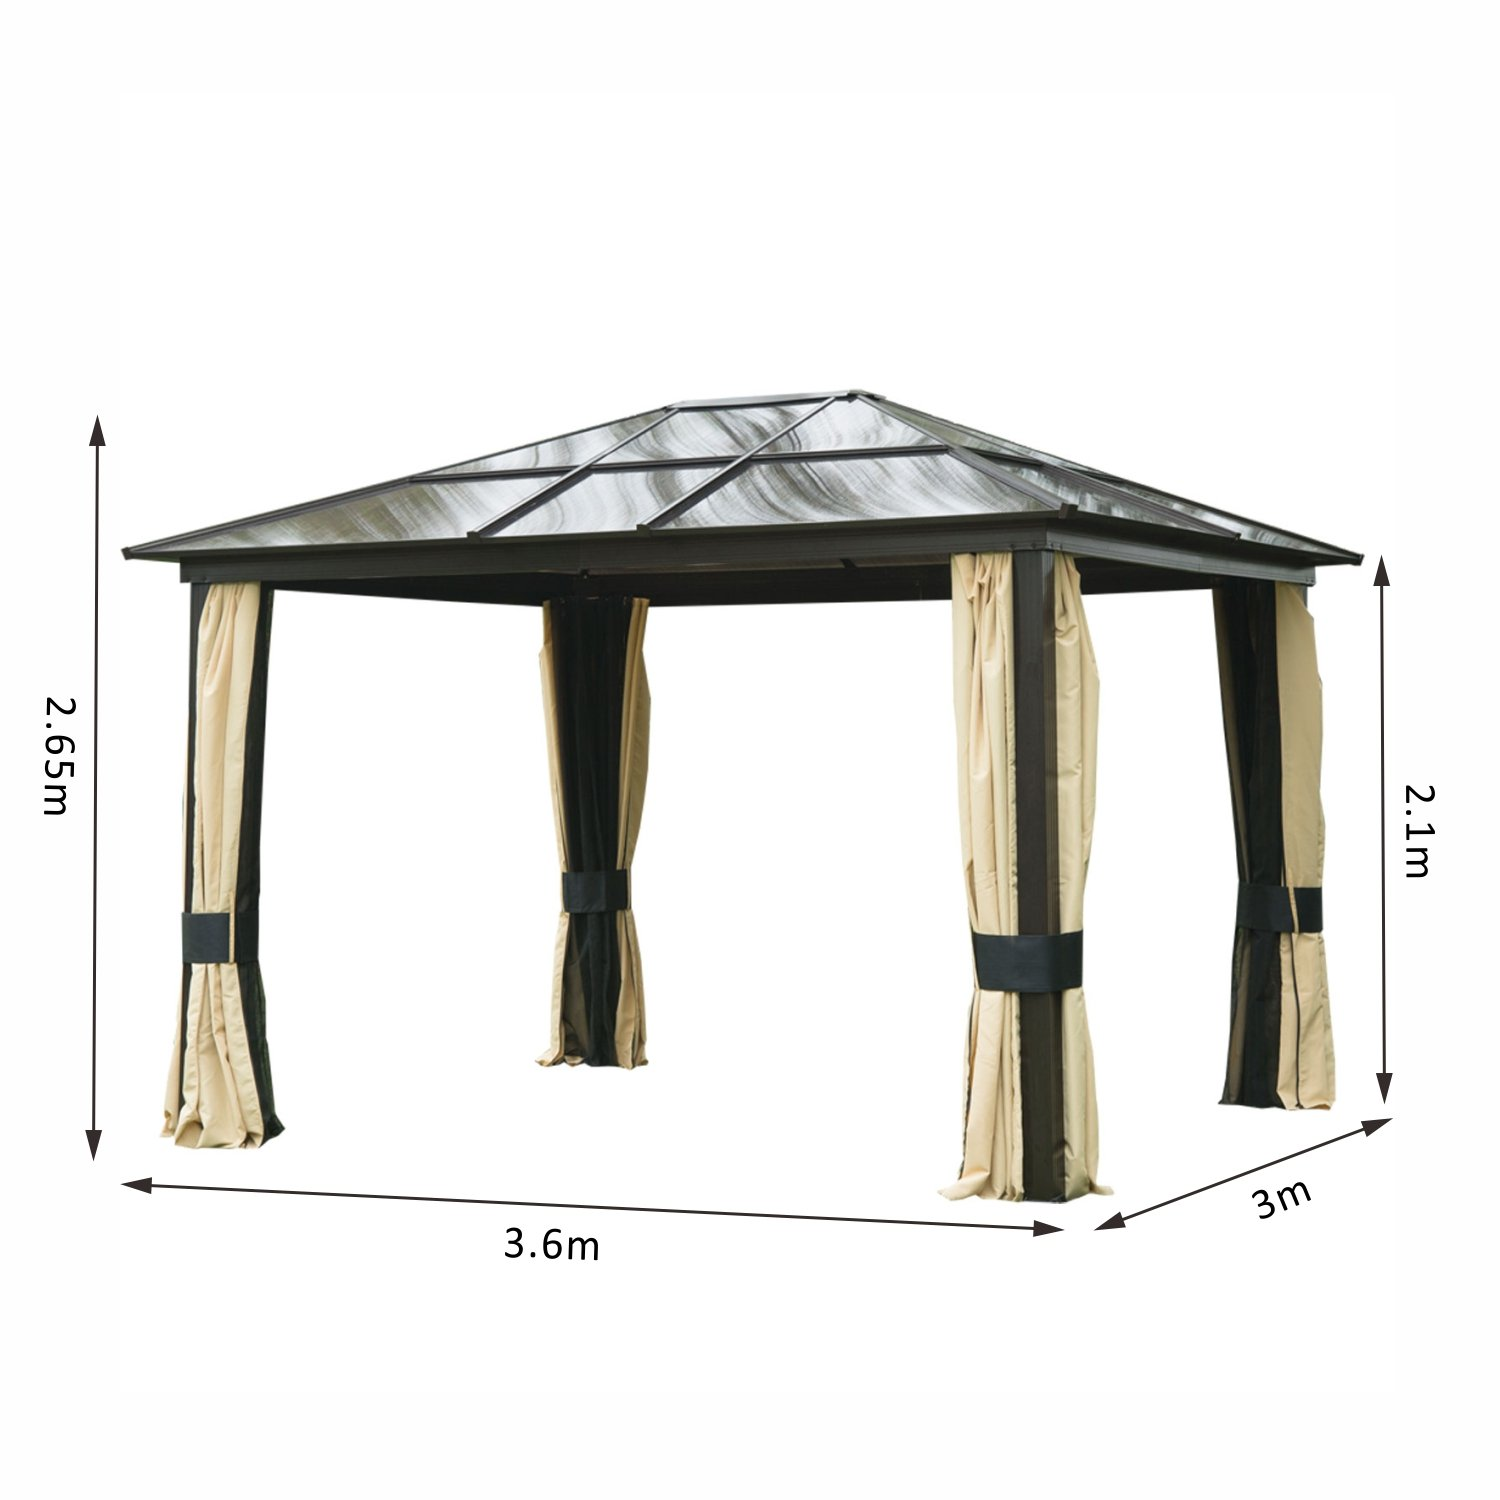 Outsunny 3 x 3 6m Patio Aluminium Gazebo Canopy Marquee Party Tent